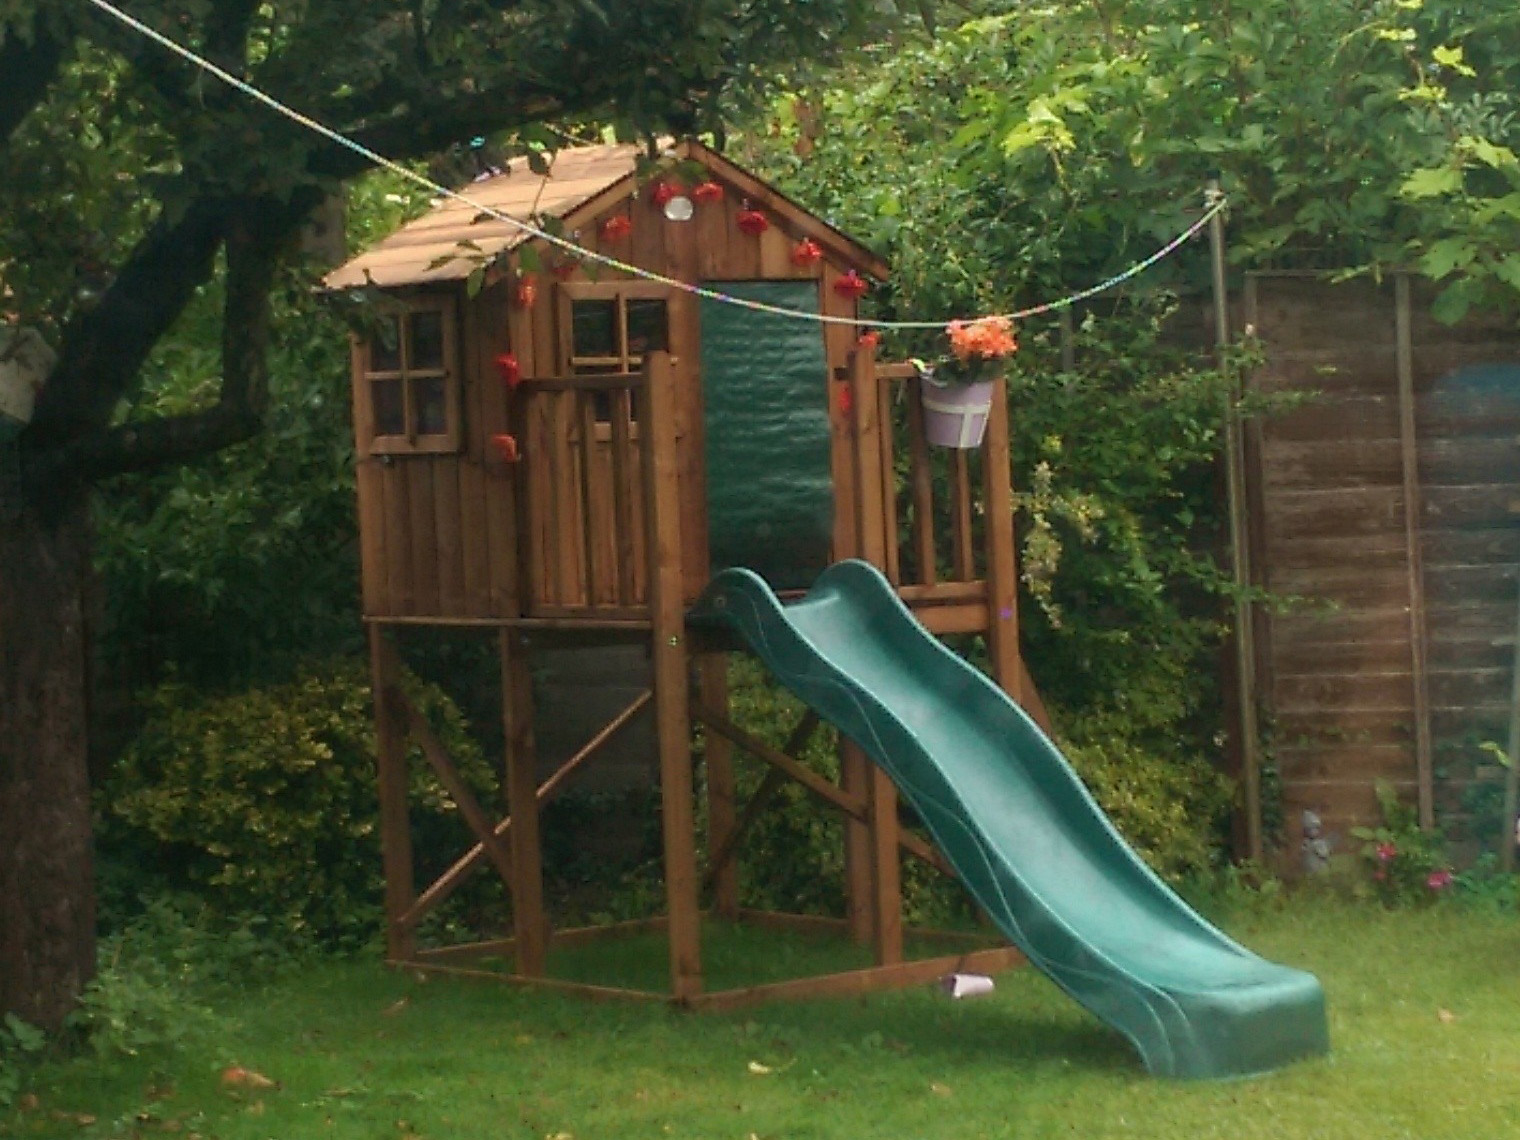 Climbing Frame from Dunster House with decoration